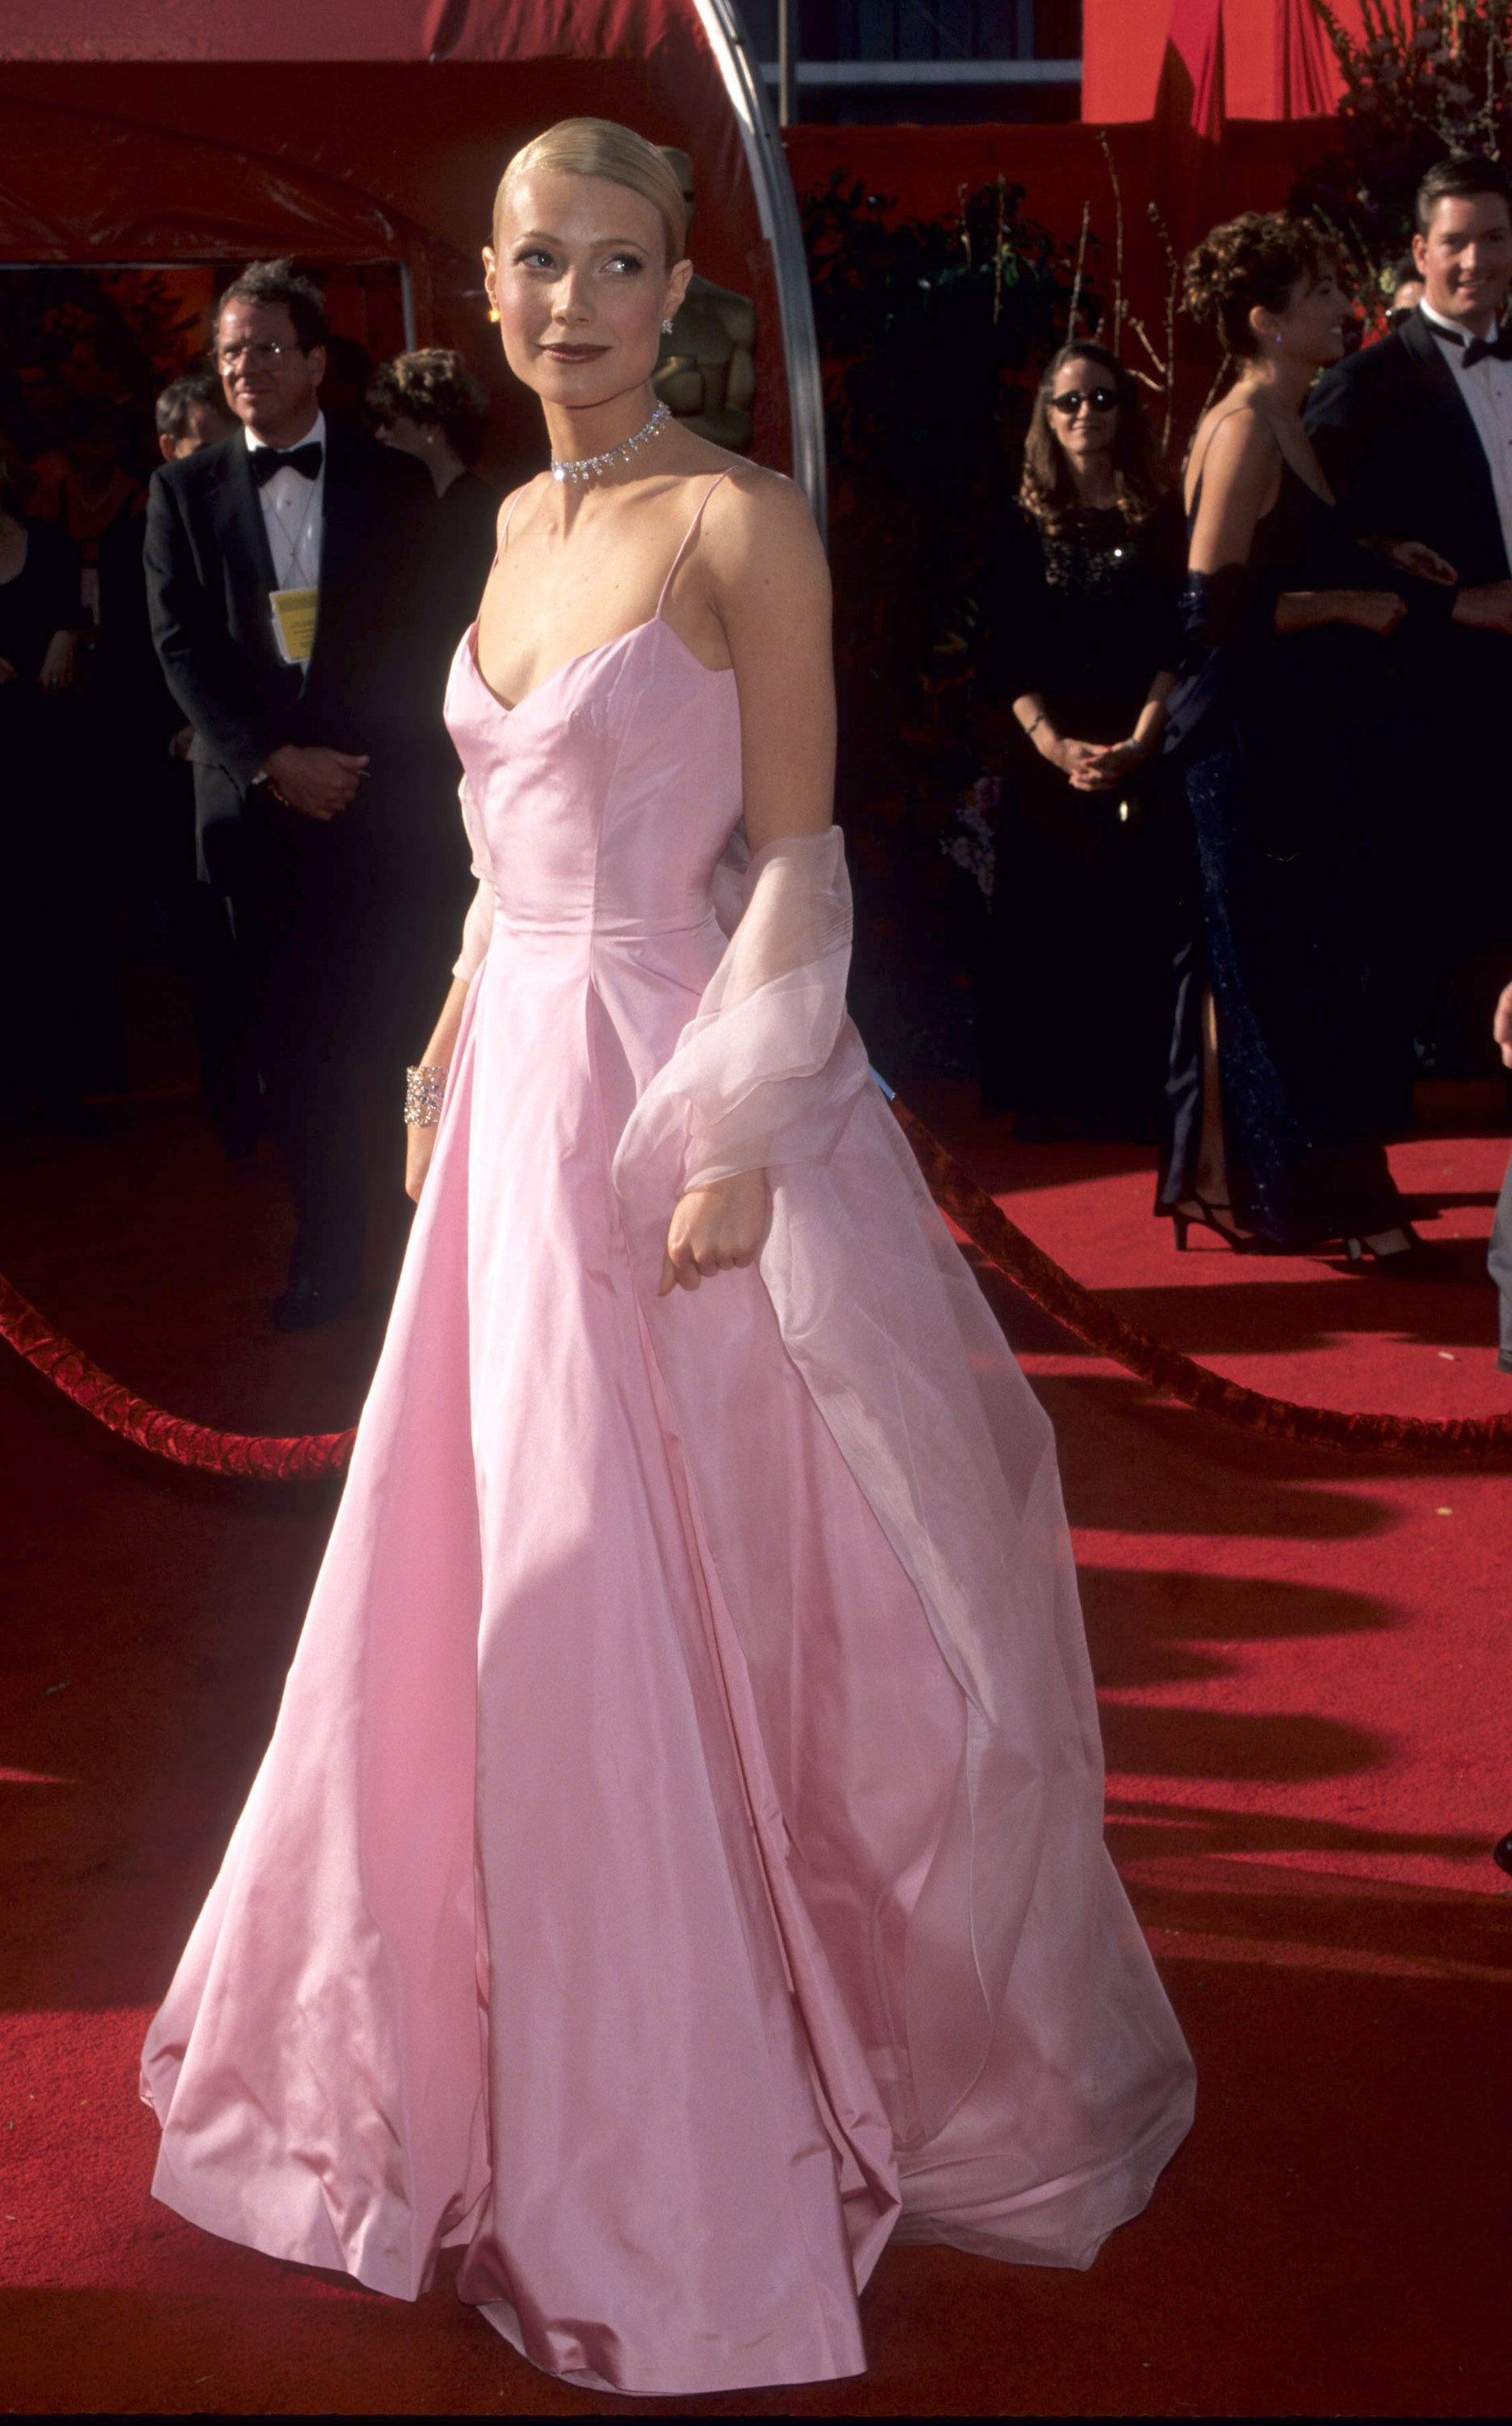 Gwyneth Paltrow in Ralph Lauren at the 1999 Academy Awards